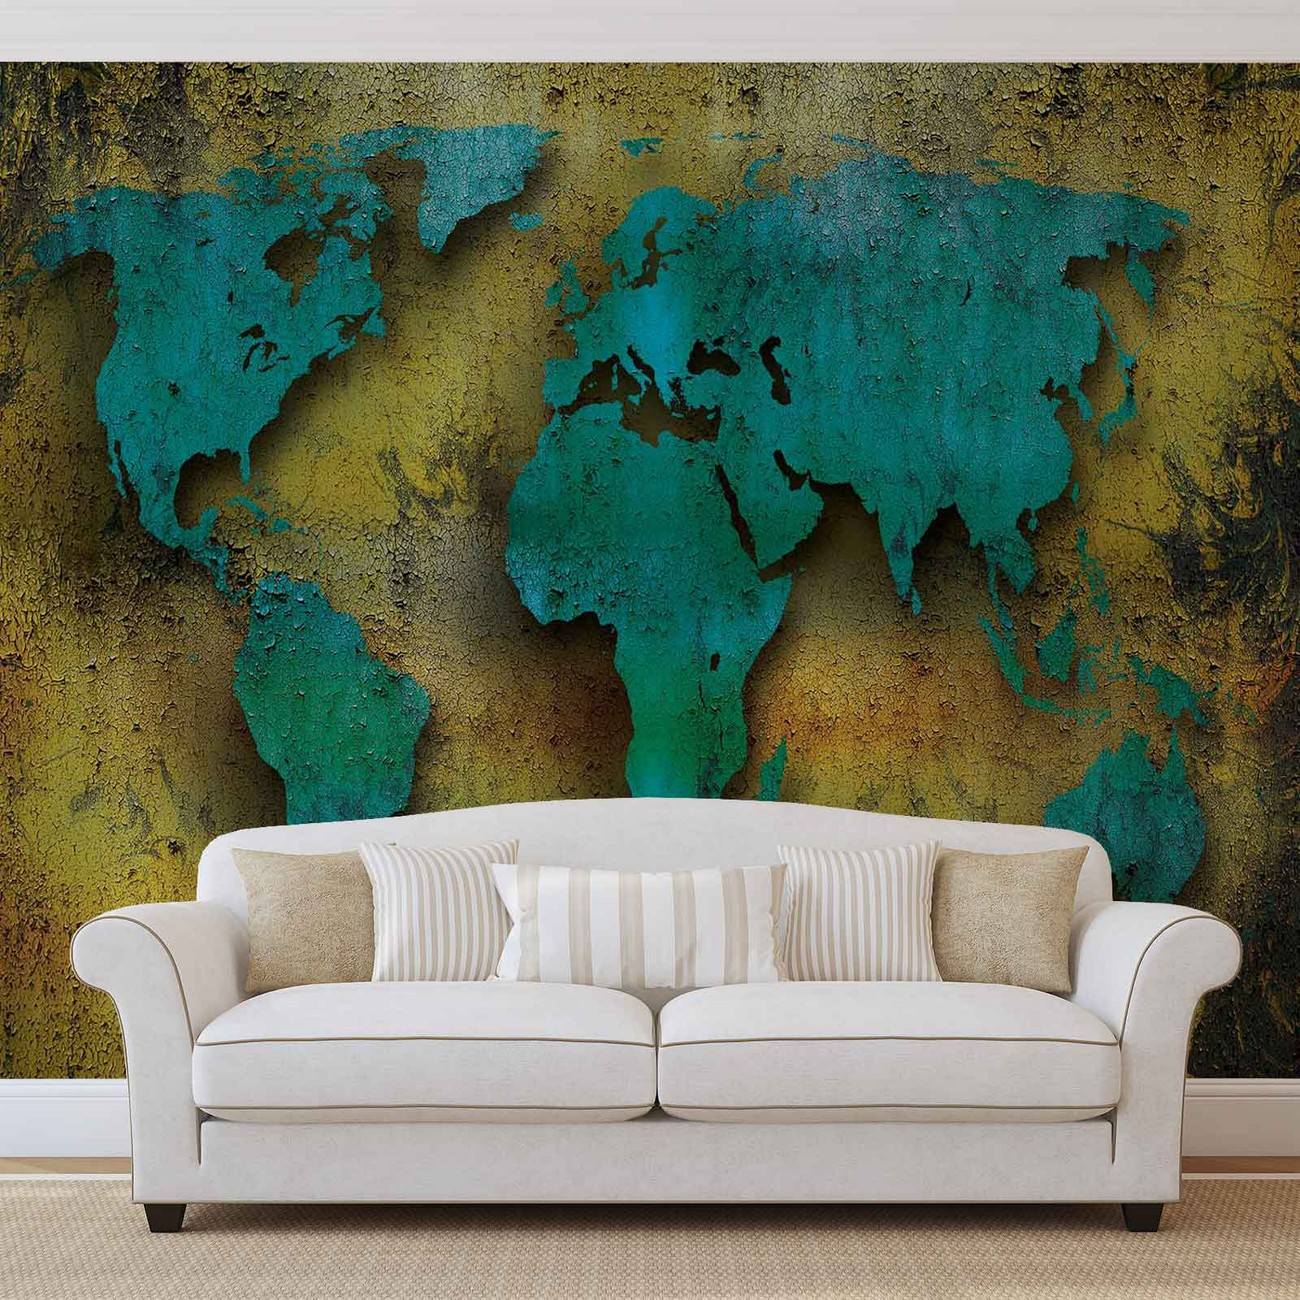 carte du monde sur le bois poster mural papier peint acheter le sur. Black Bedroom Furniture Sets. Home Design Ideas